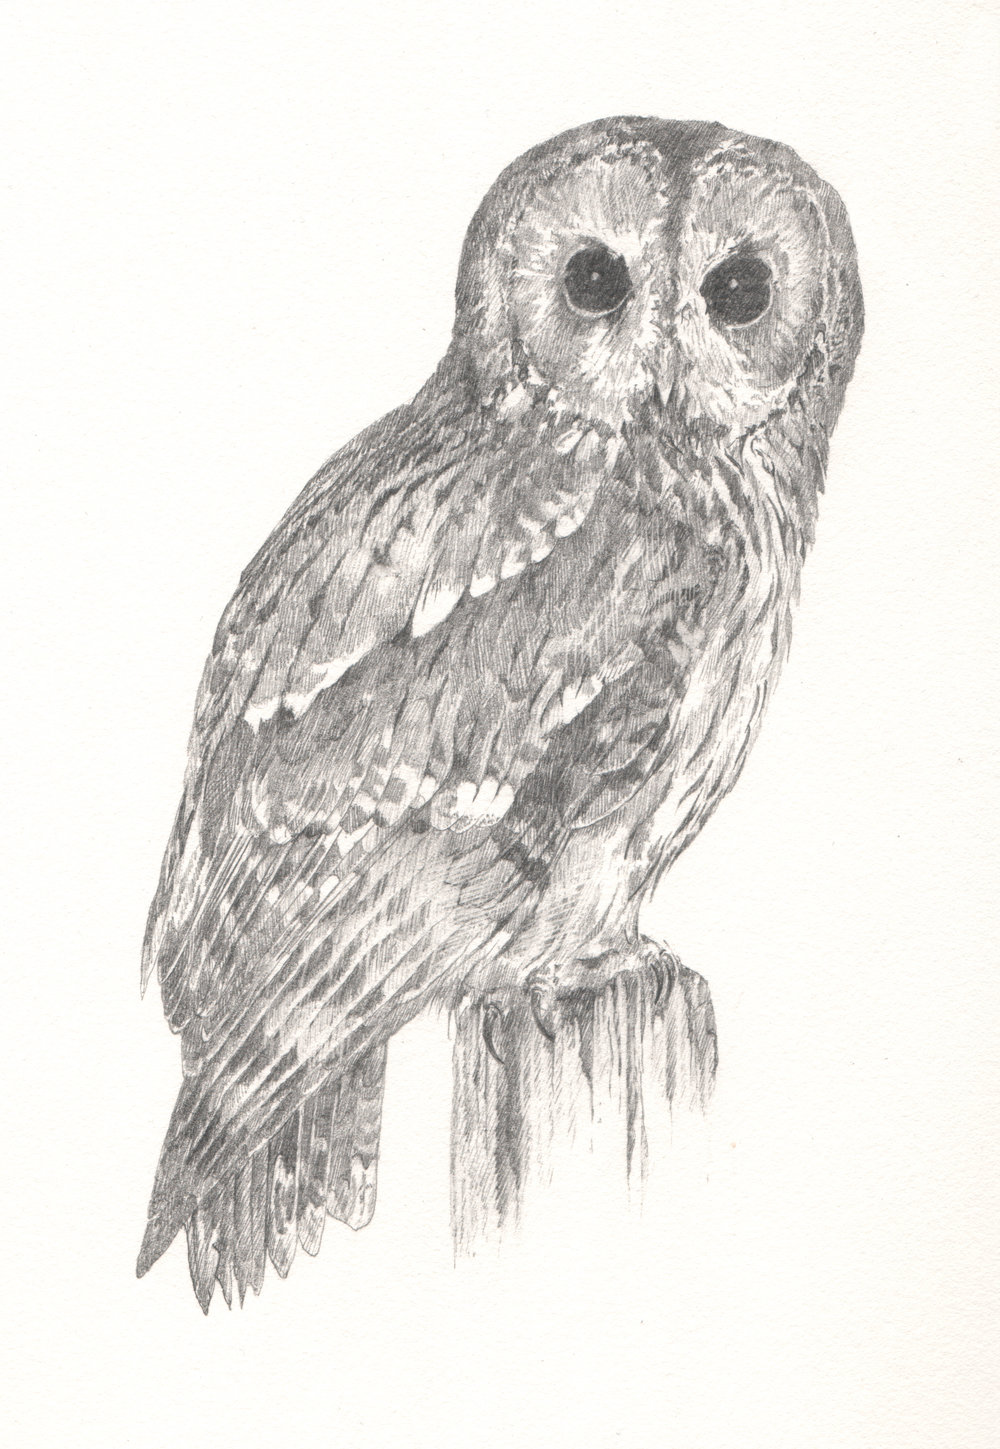 Tawny Owl - Study for author Miriam Darlington